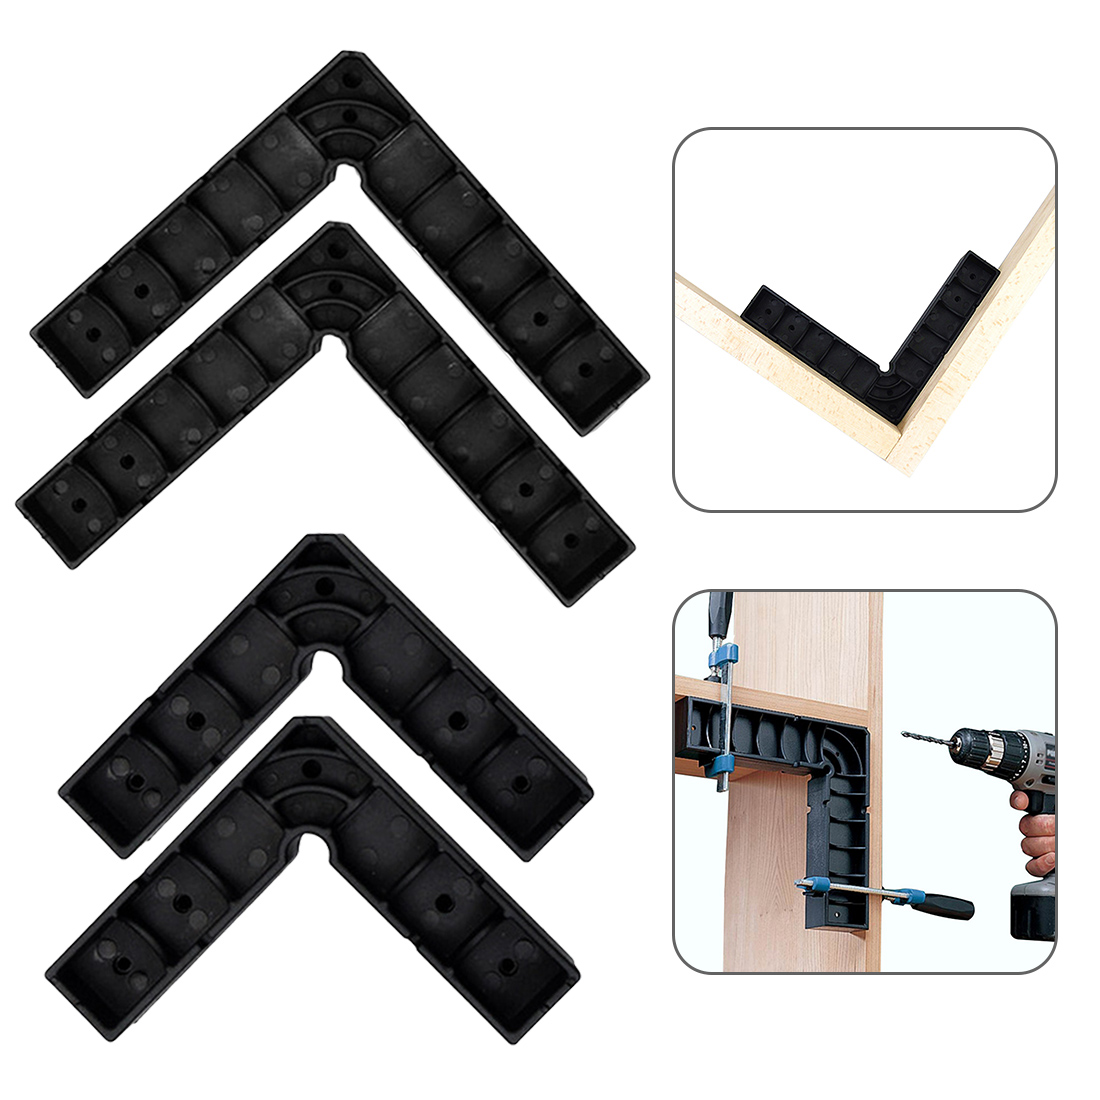 2pcs 90 Degree Right Angle S L Positioning Block Jig Clamp Strong Clamping Force Woodworking Tools in Clamps from Home Improvement